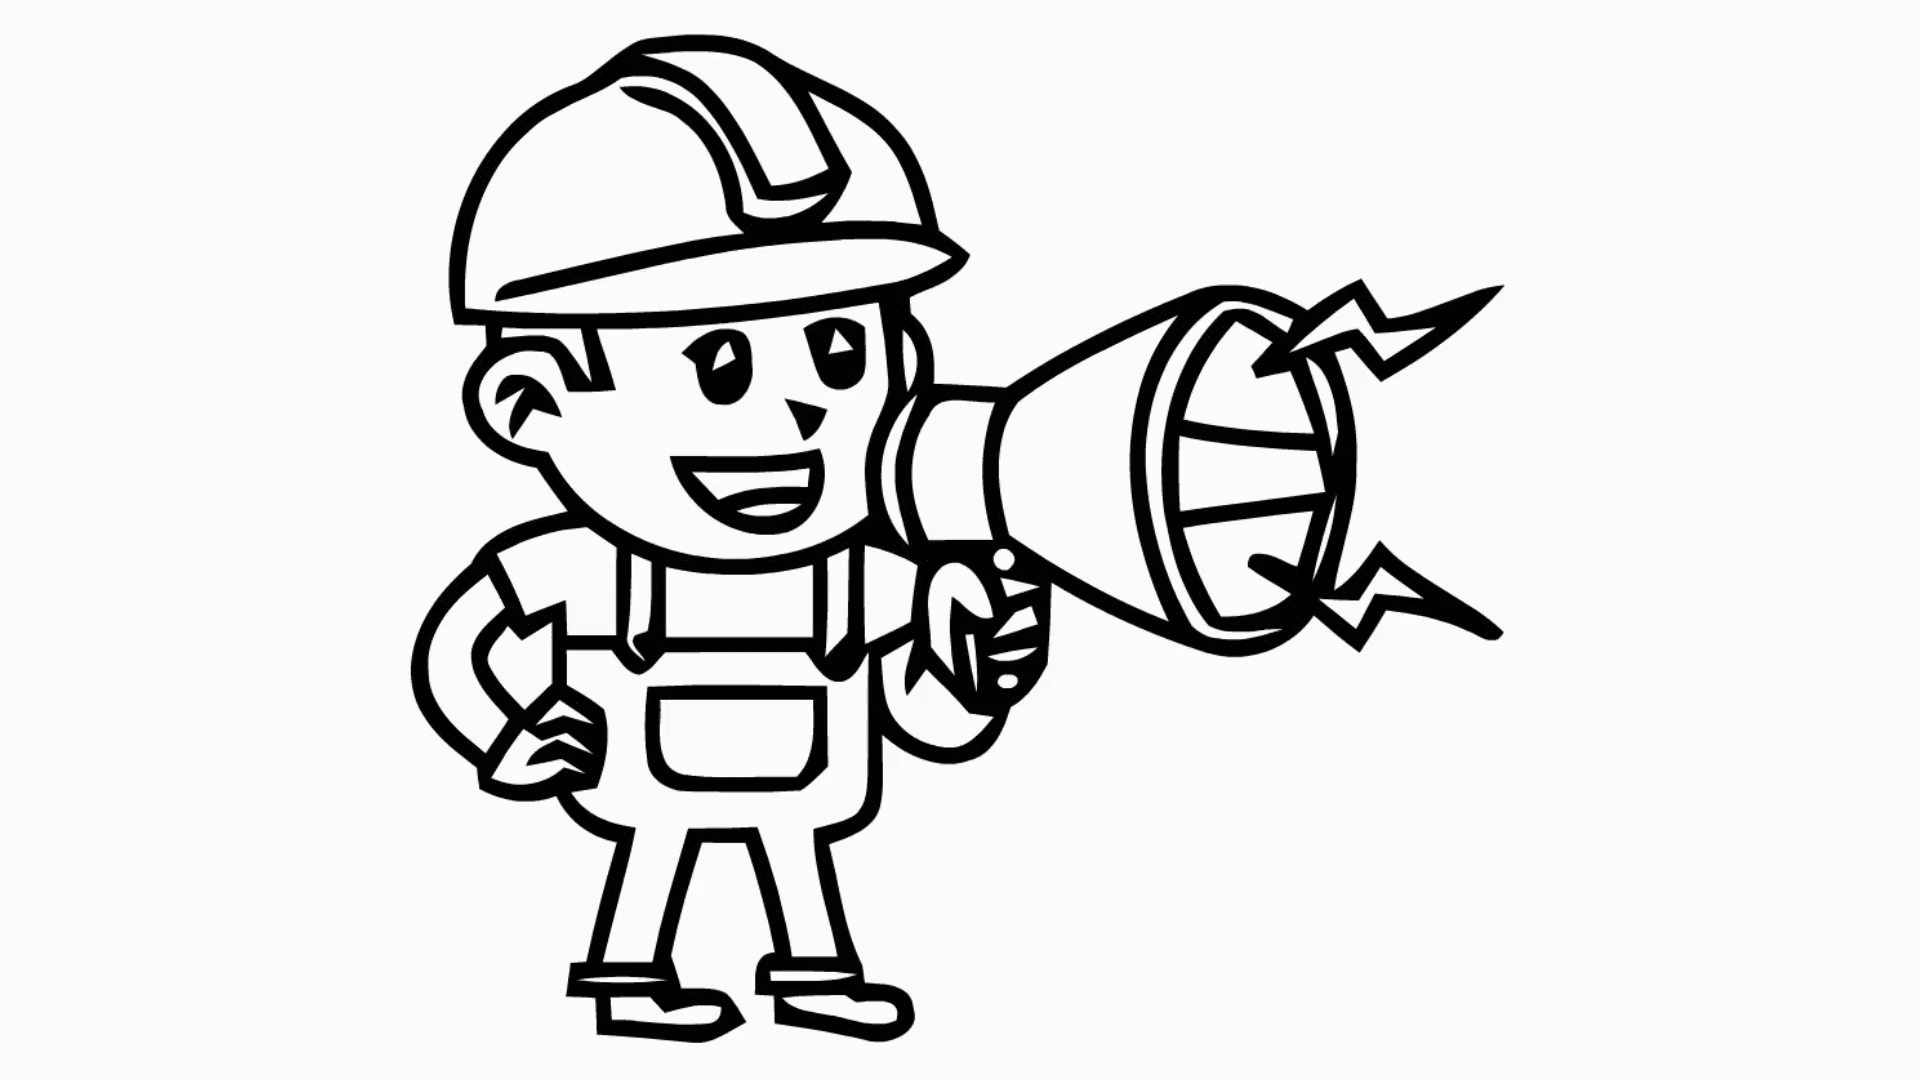 Drawn microphone animated Man Motion microphone drawn hand